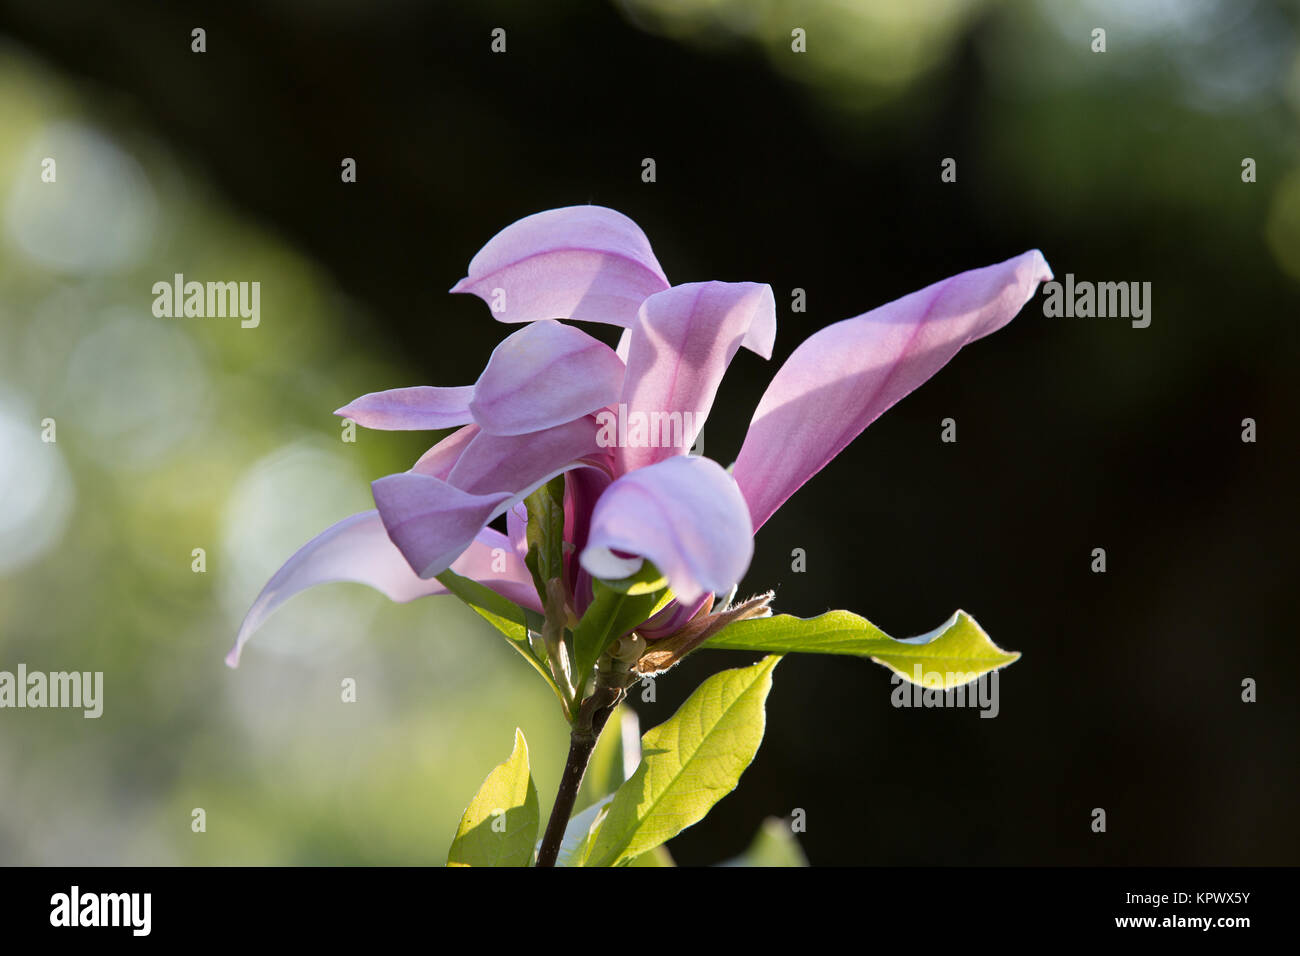 Flower of the lily like magnolia tree stock photo 168985095 alamy flower of the lily like magnolia tree izmirmasajfo Image collections